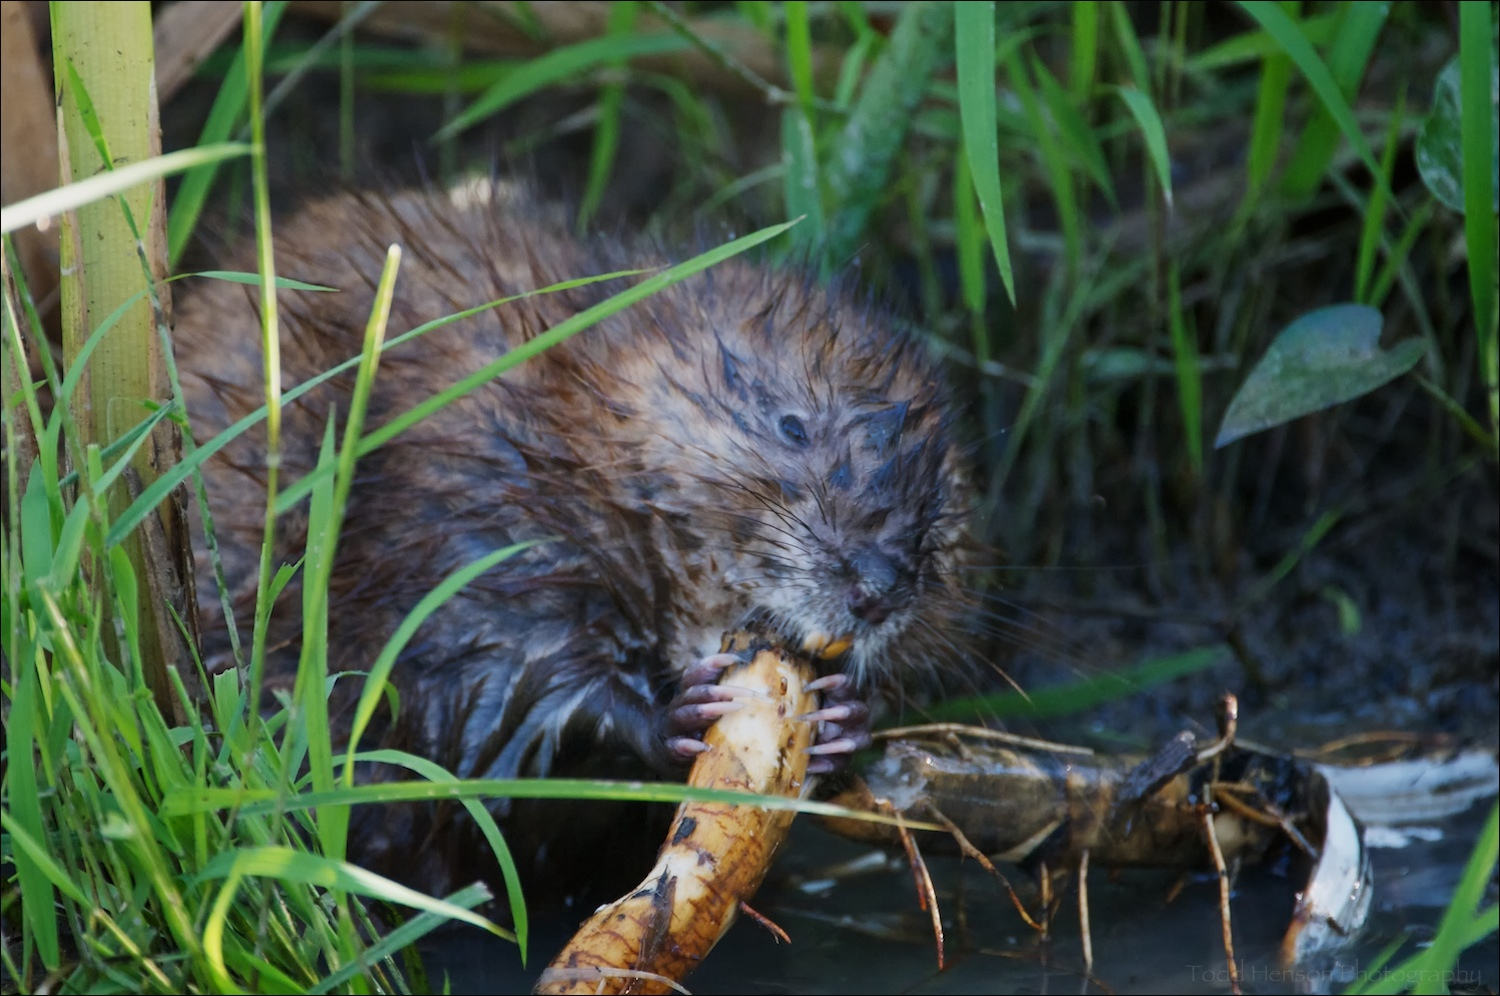 Common Muskrat eating roots. Notice the teeth and claws